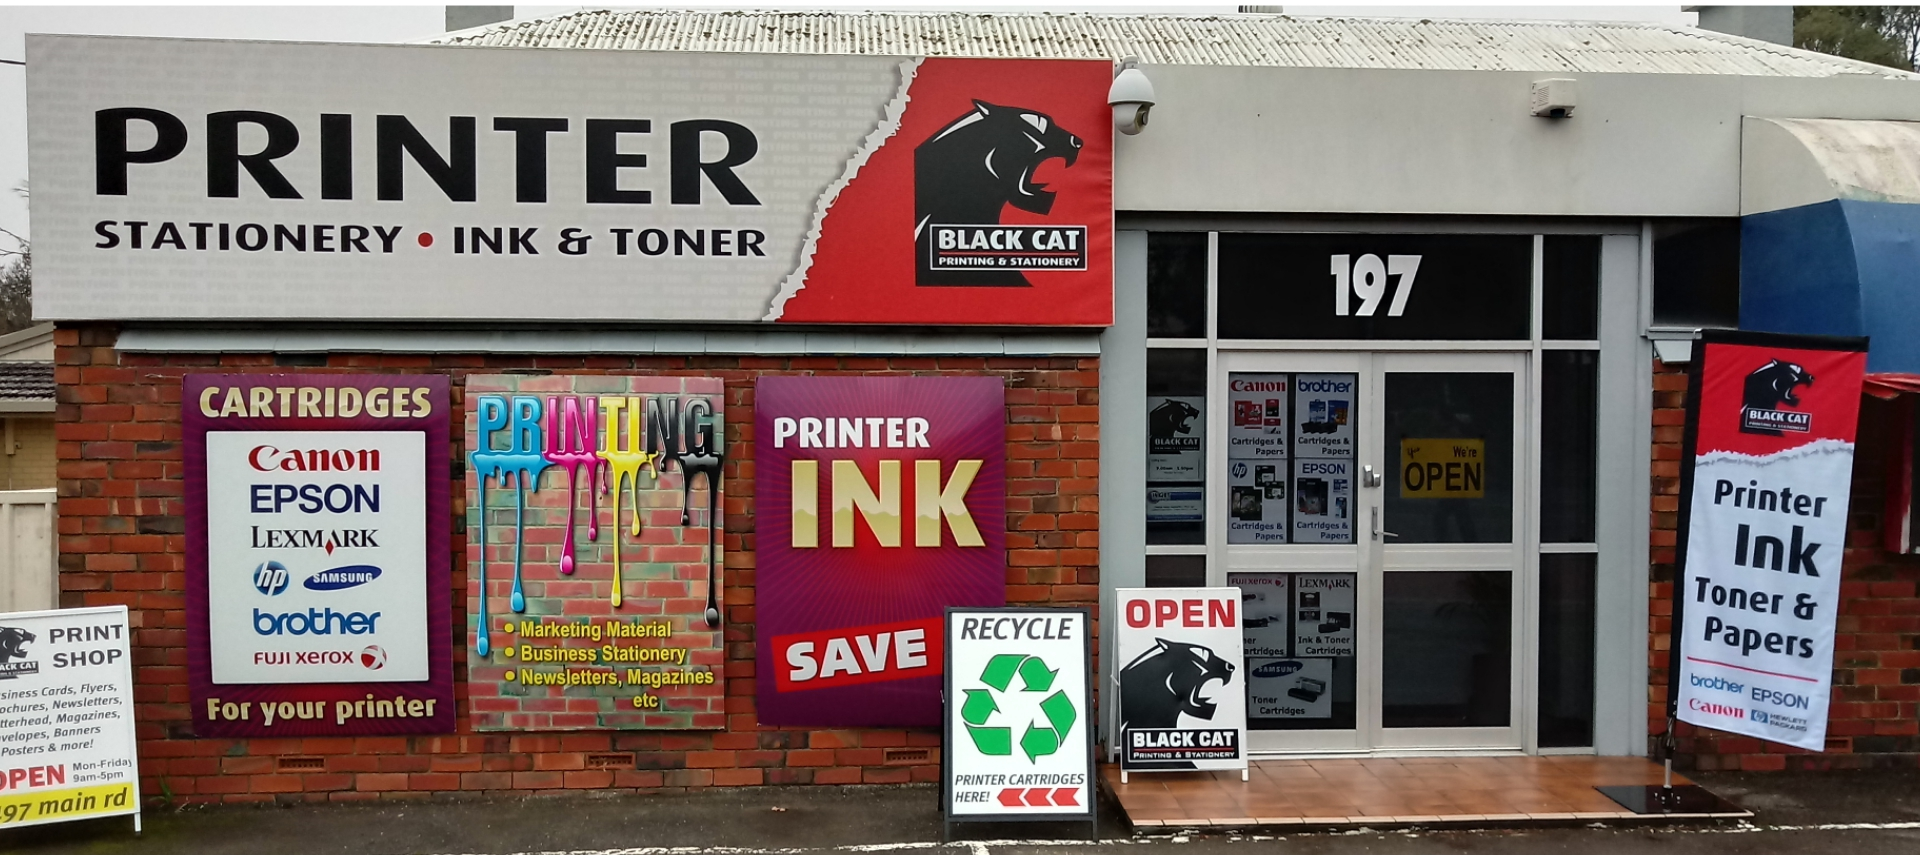 Black Cat Printing & Stationery